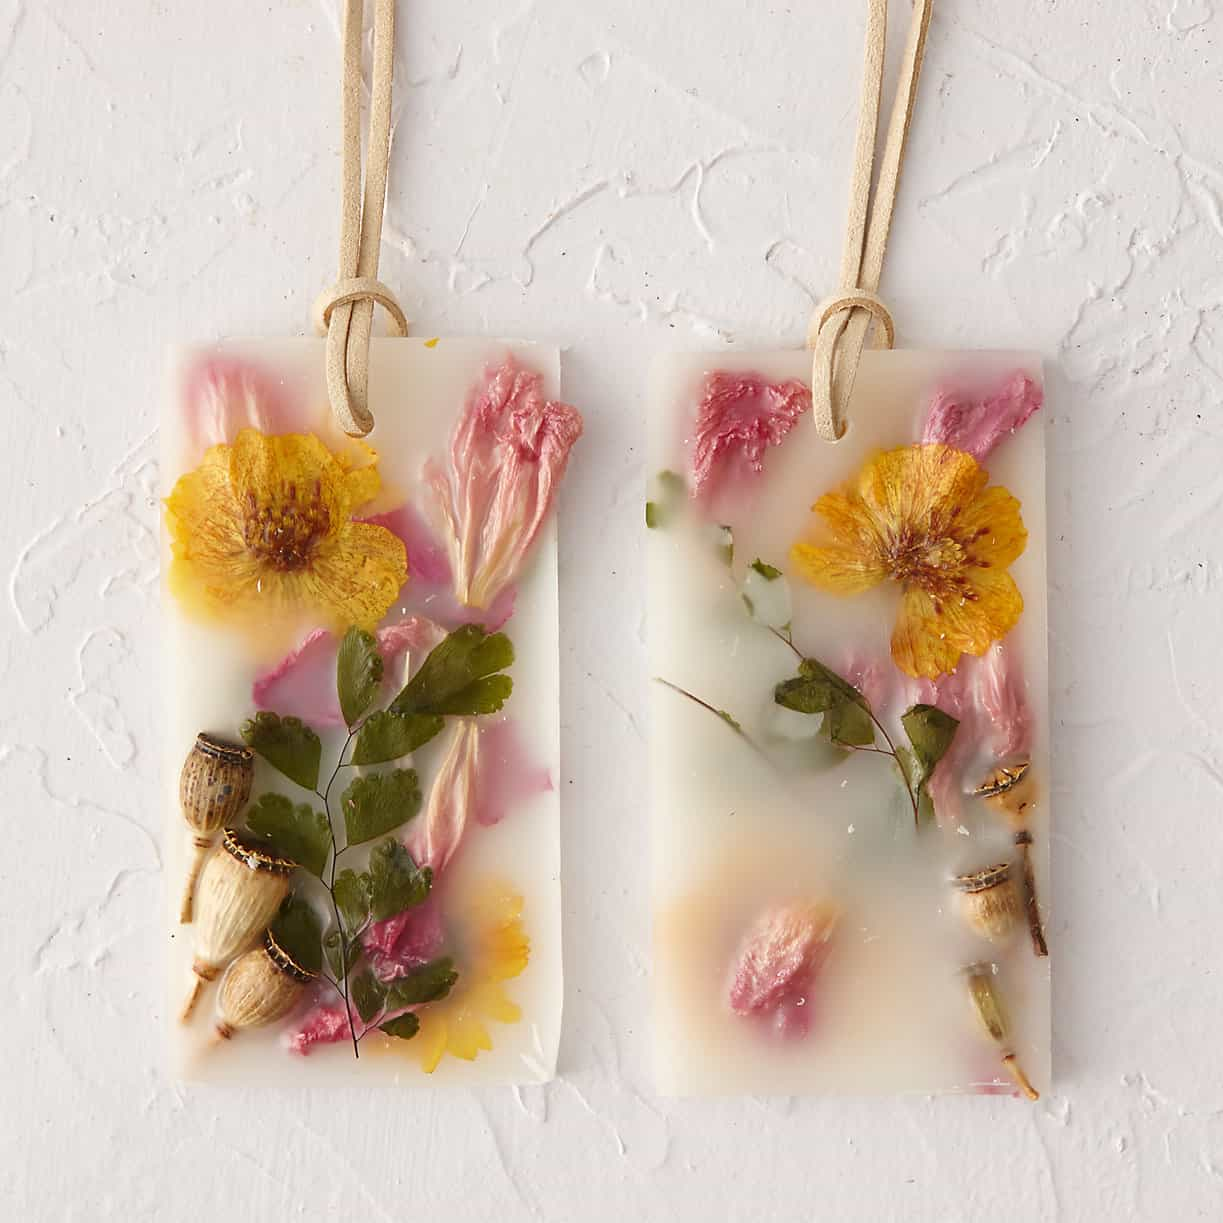 Dried flower scented sachets